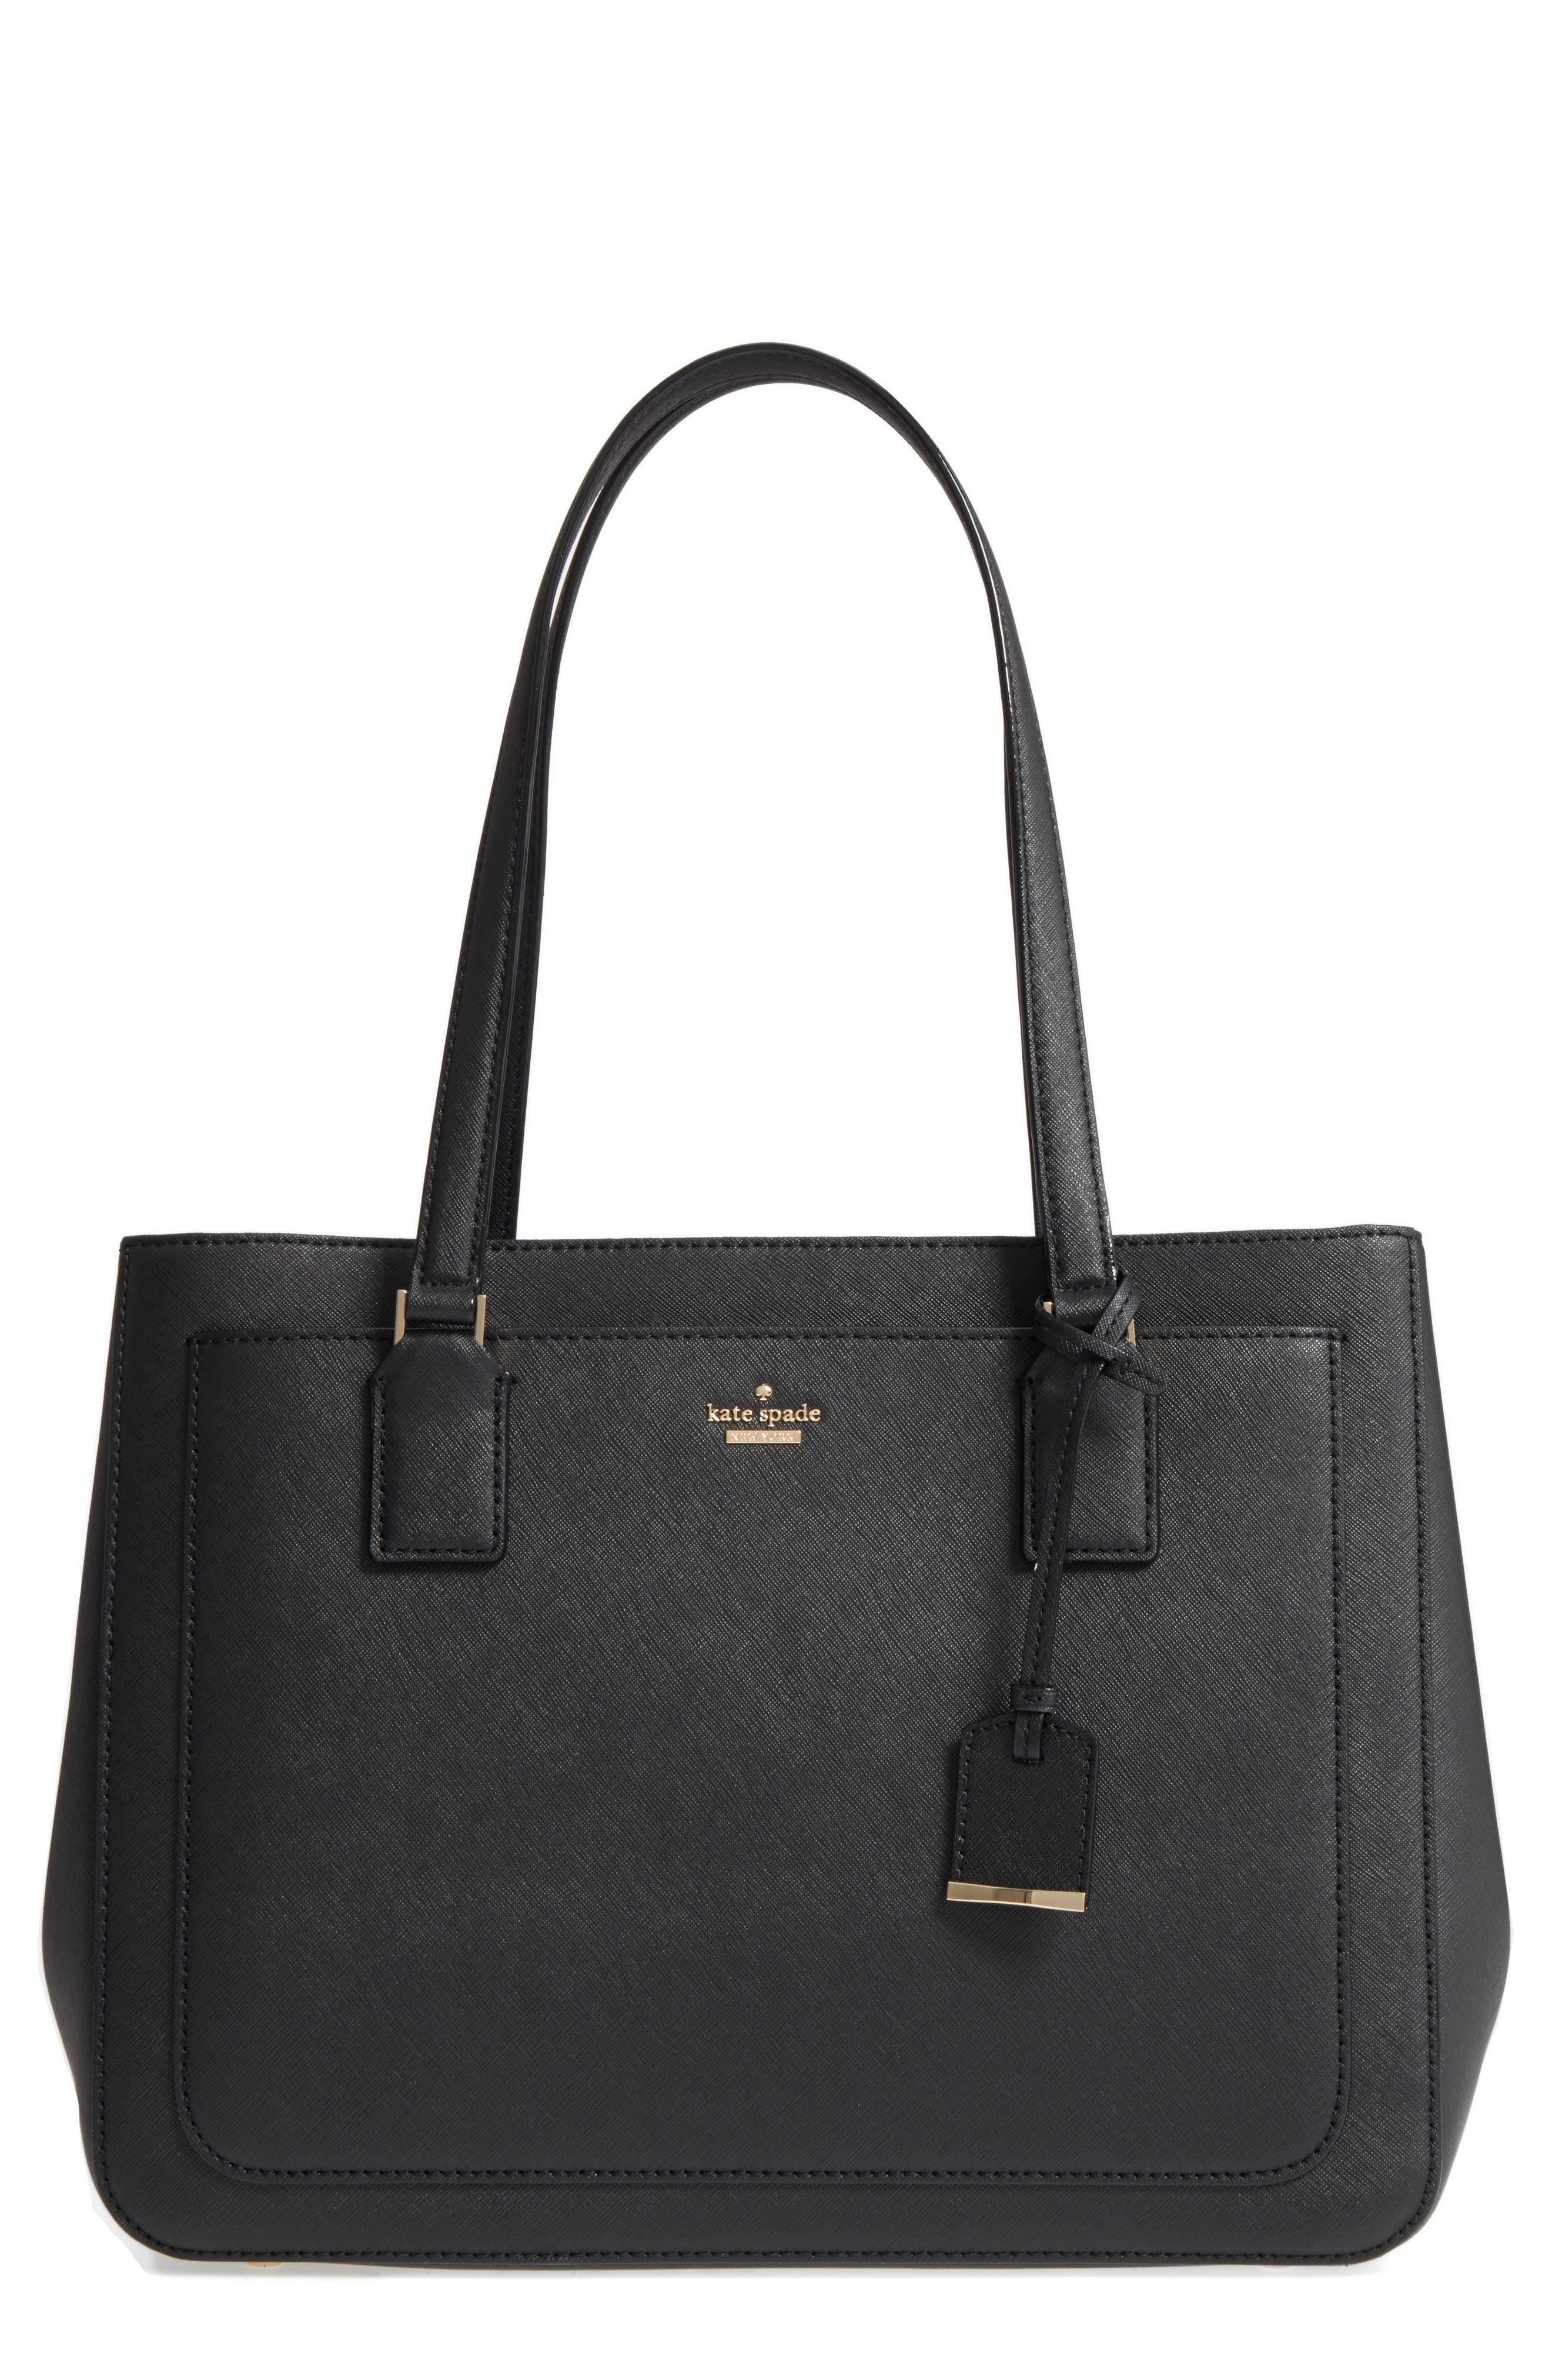 cameron street - zooey leather tote,                             Main thumbnail 1, color,                             Black